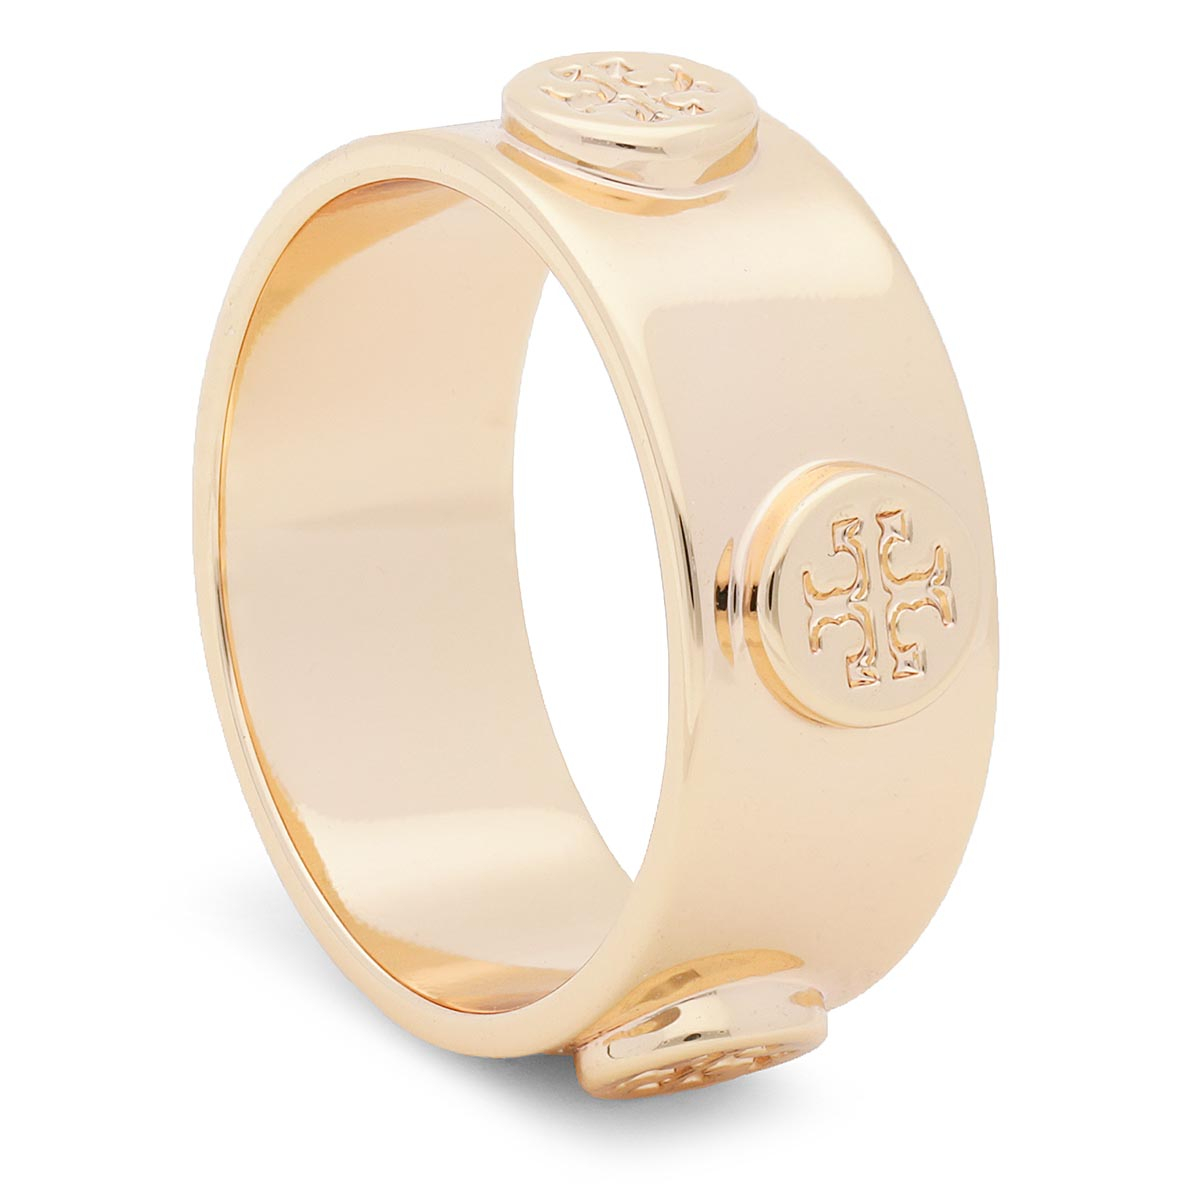 Image of Anello TORY BURCH - Logo Stud Ring 53362 Tory Gold 720